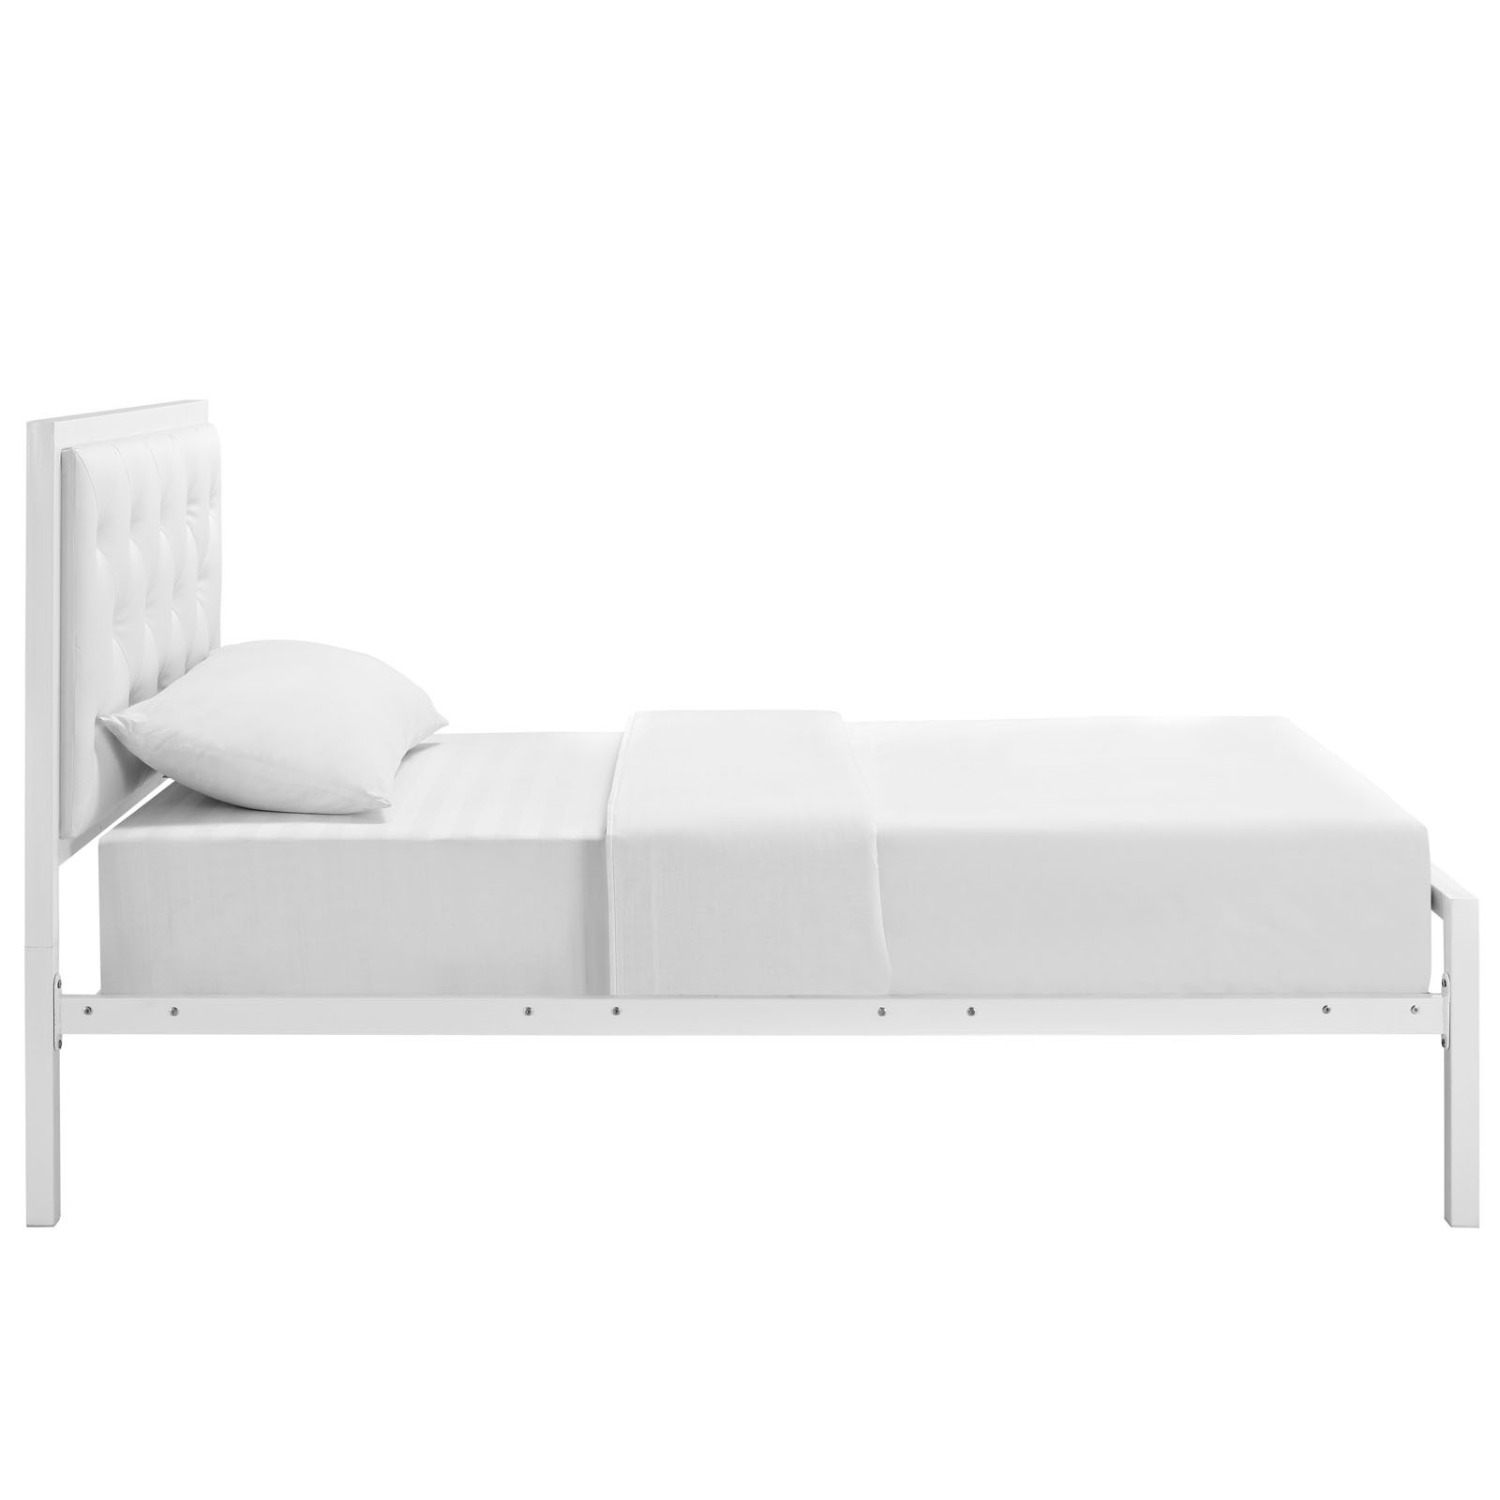 Twin Bed In White Steel Frame & Tufted Headboard - image-1